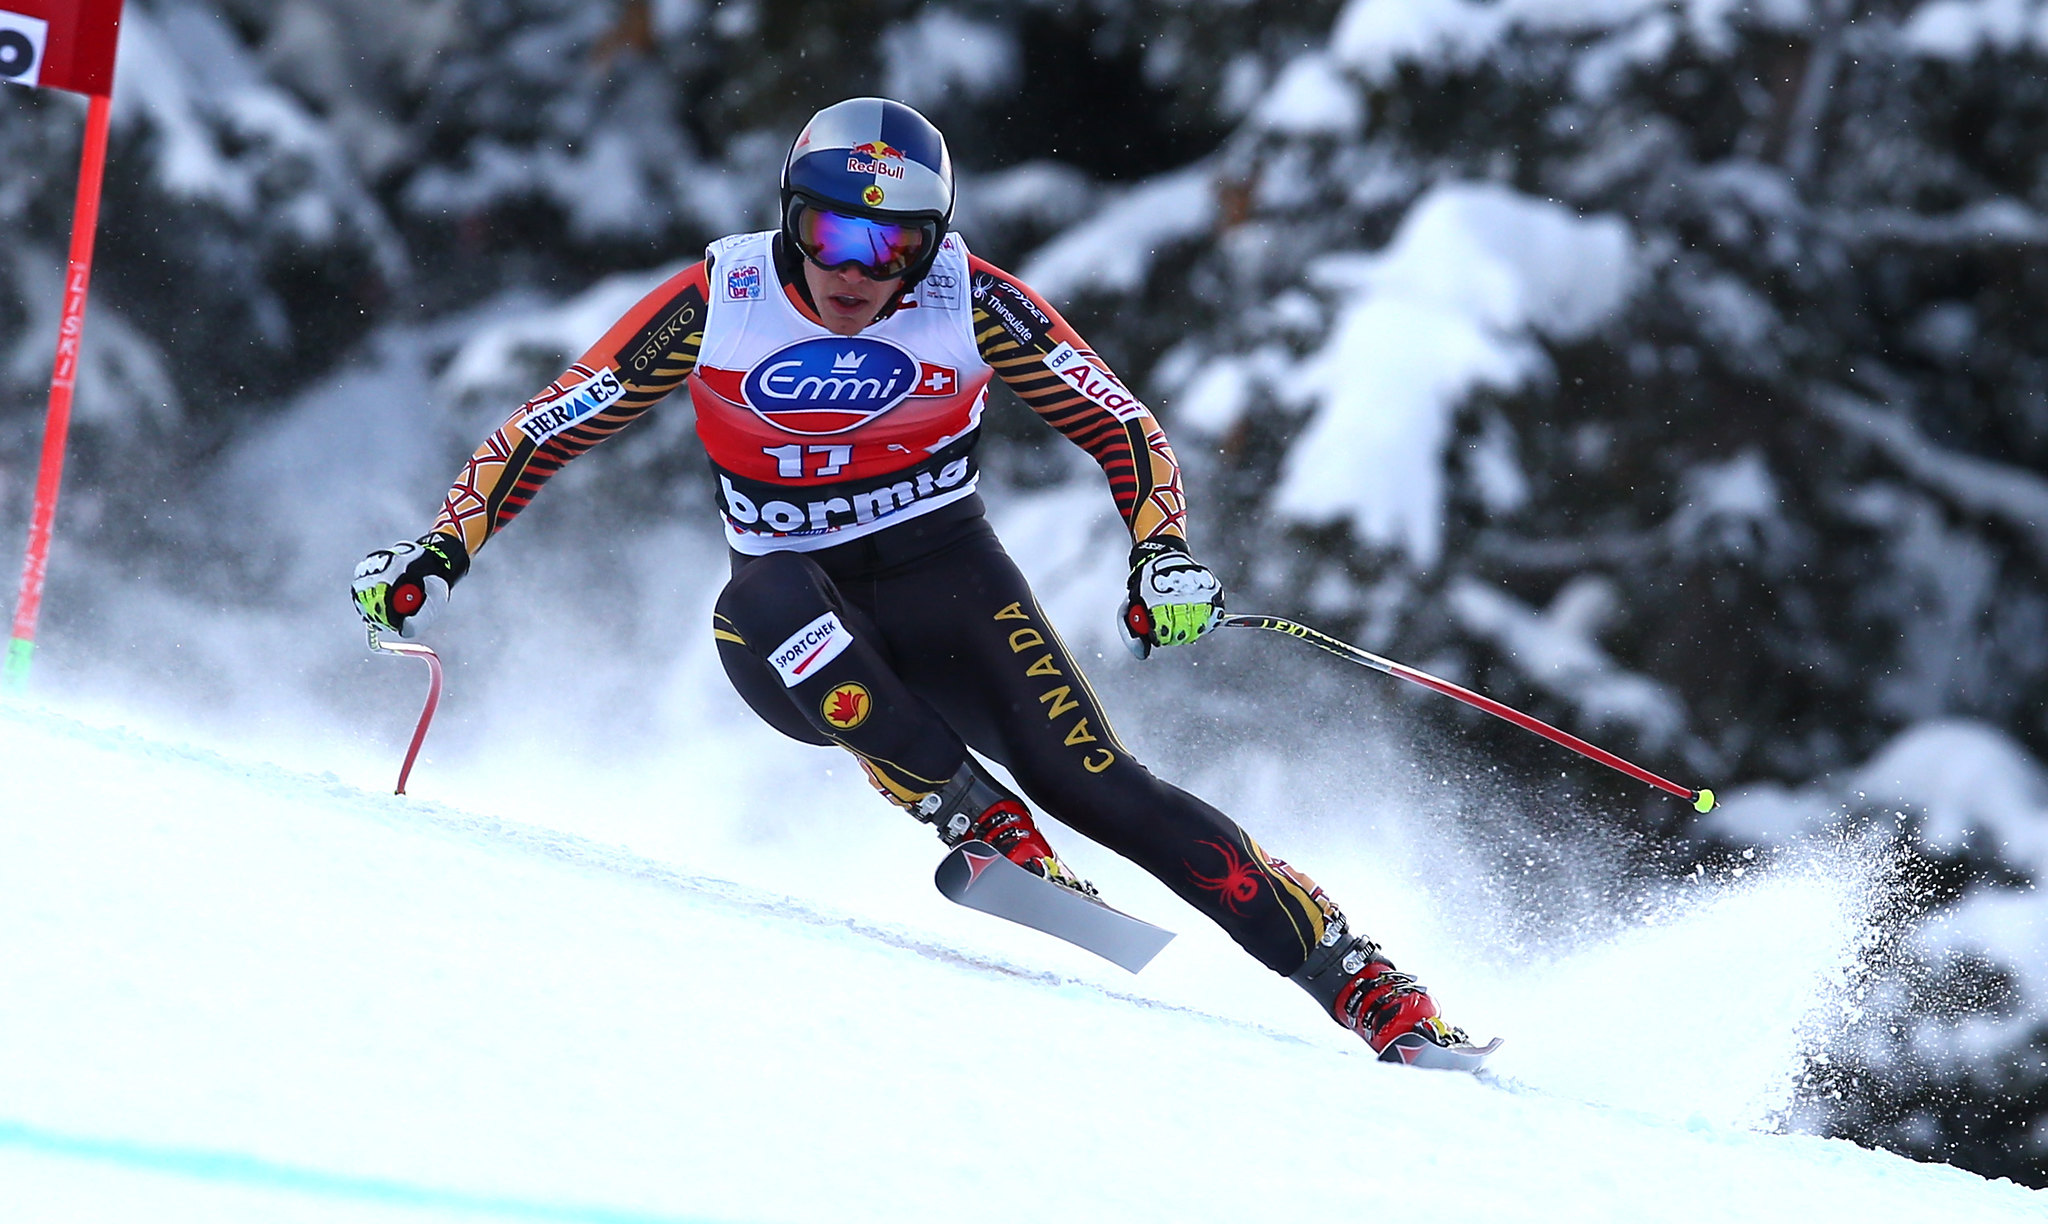 Guay speeds his way into Canadian history with a 3rd place in Bormio, ITA to earn the most World Cup Podiums by a Canadian